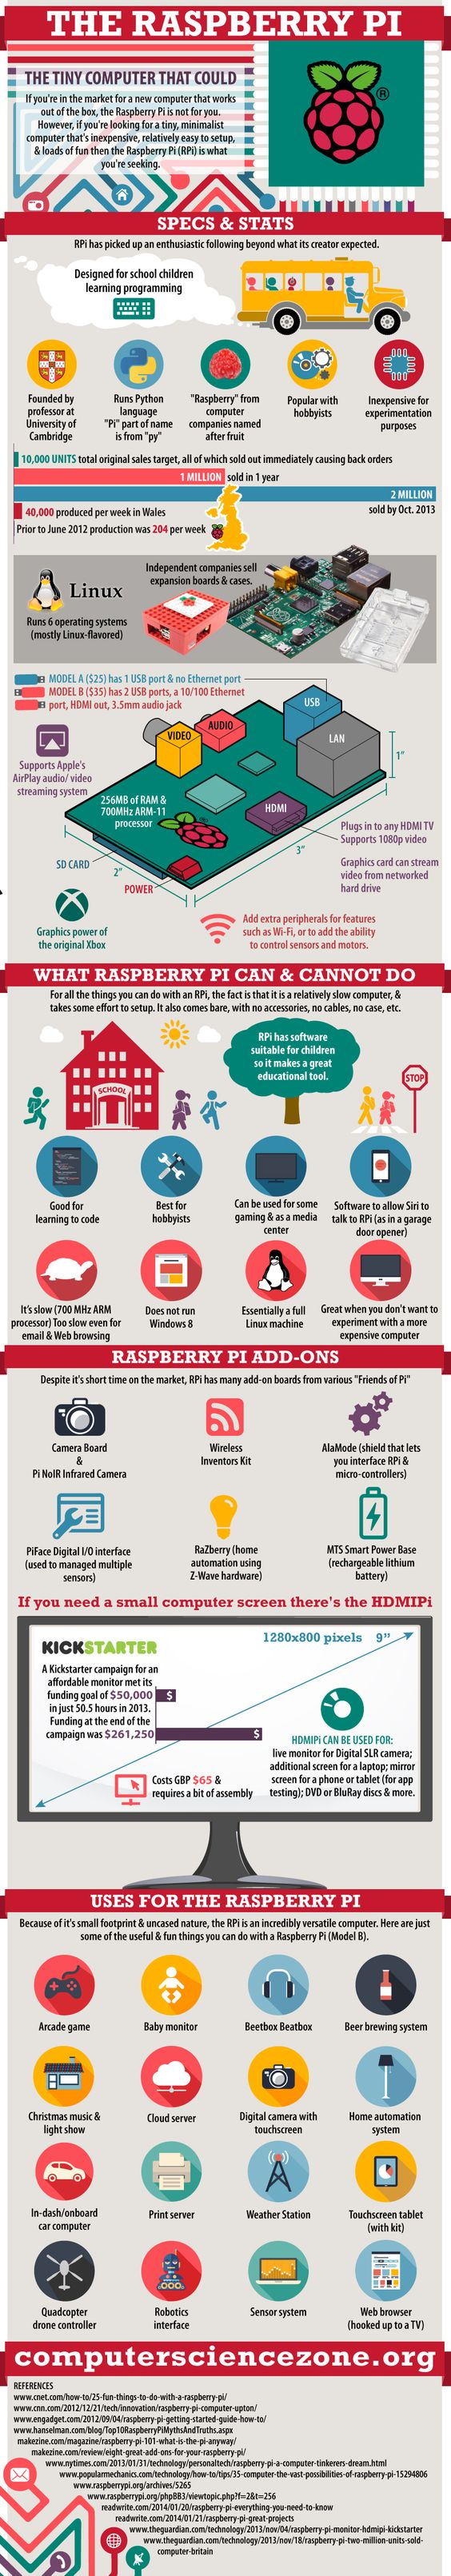 The Raspberry Pi: The Tiny Computer That Could - Computer Science Zone